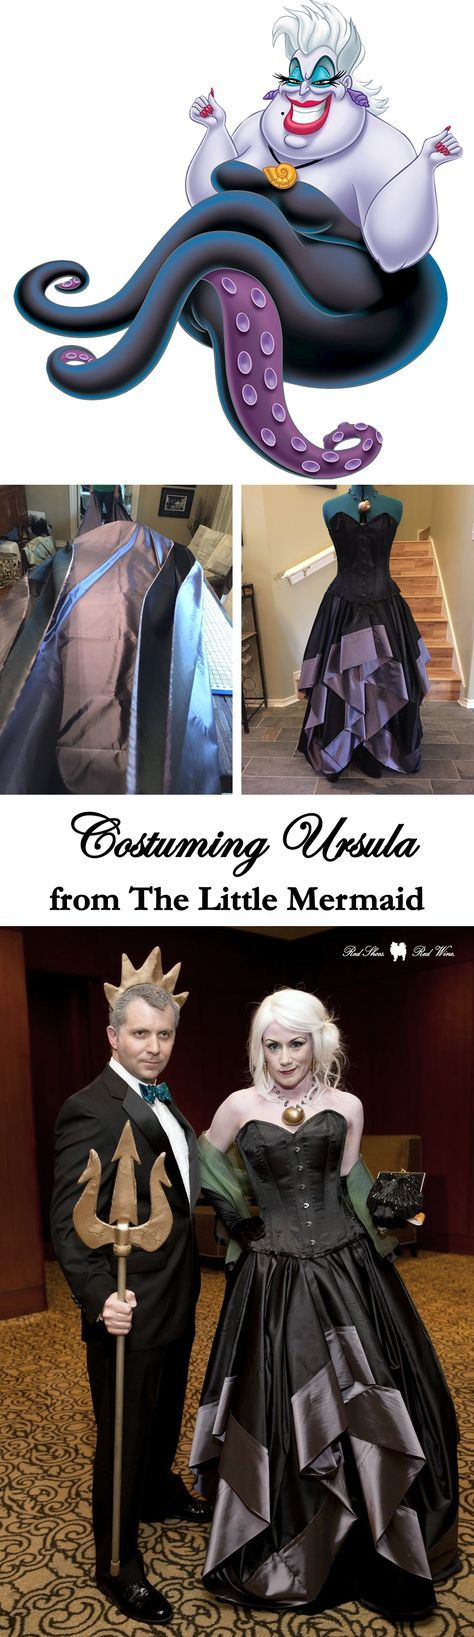 10 best king triton the little mermaid images on pinterest costuming ursula concept from the little mermaid solutioingenieria Image collections